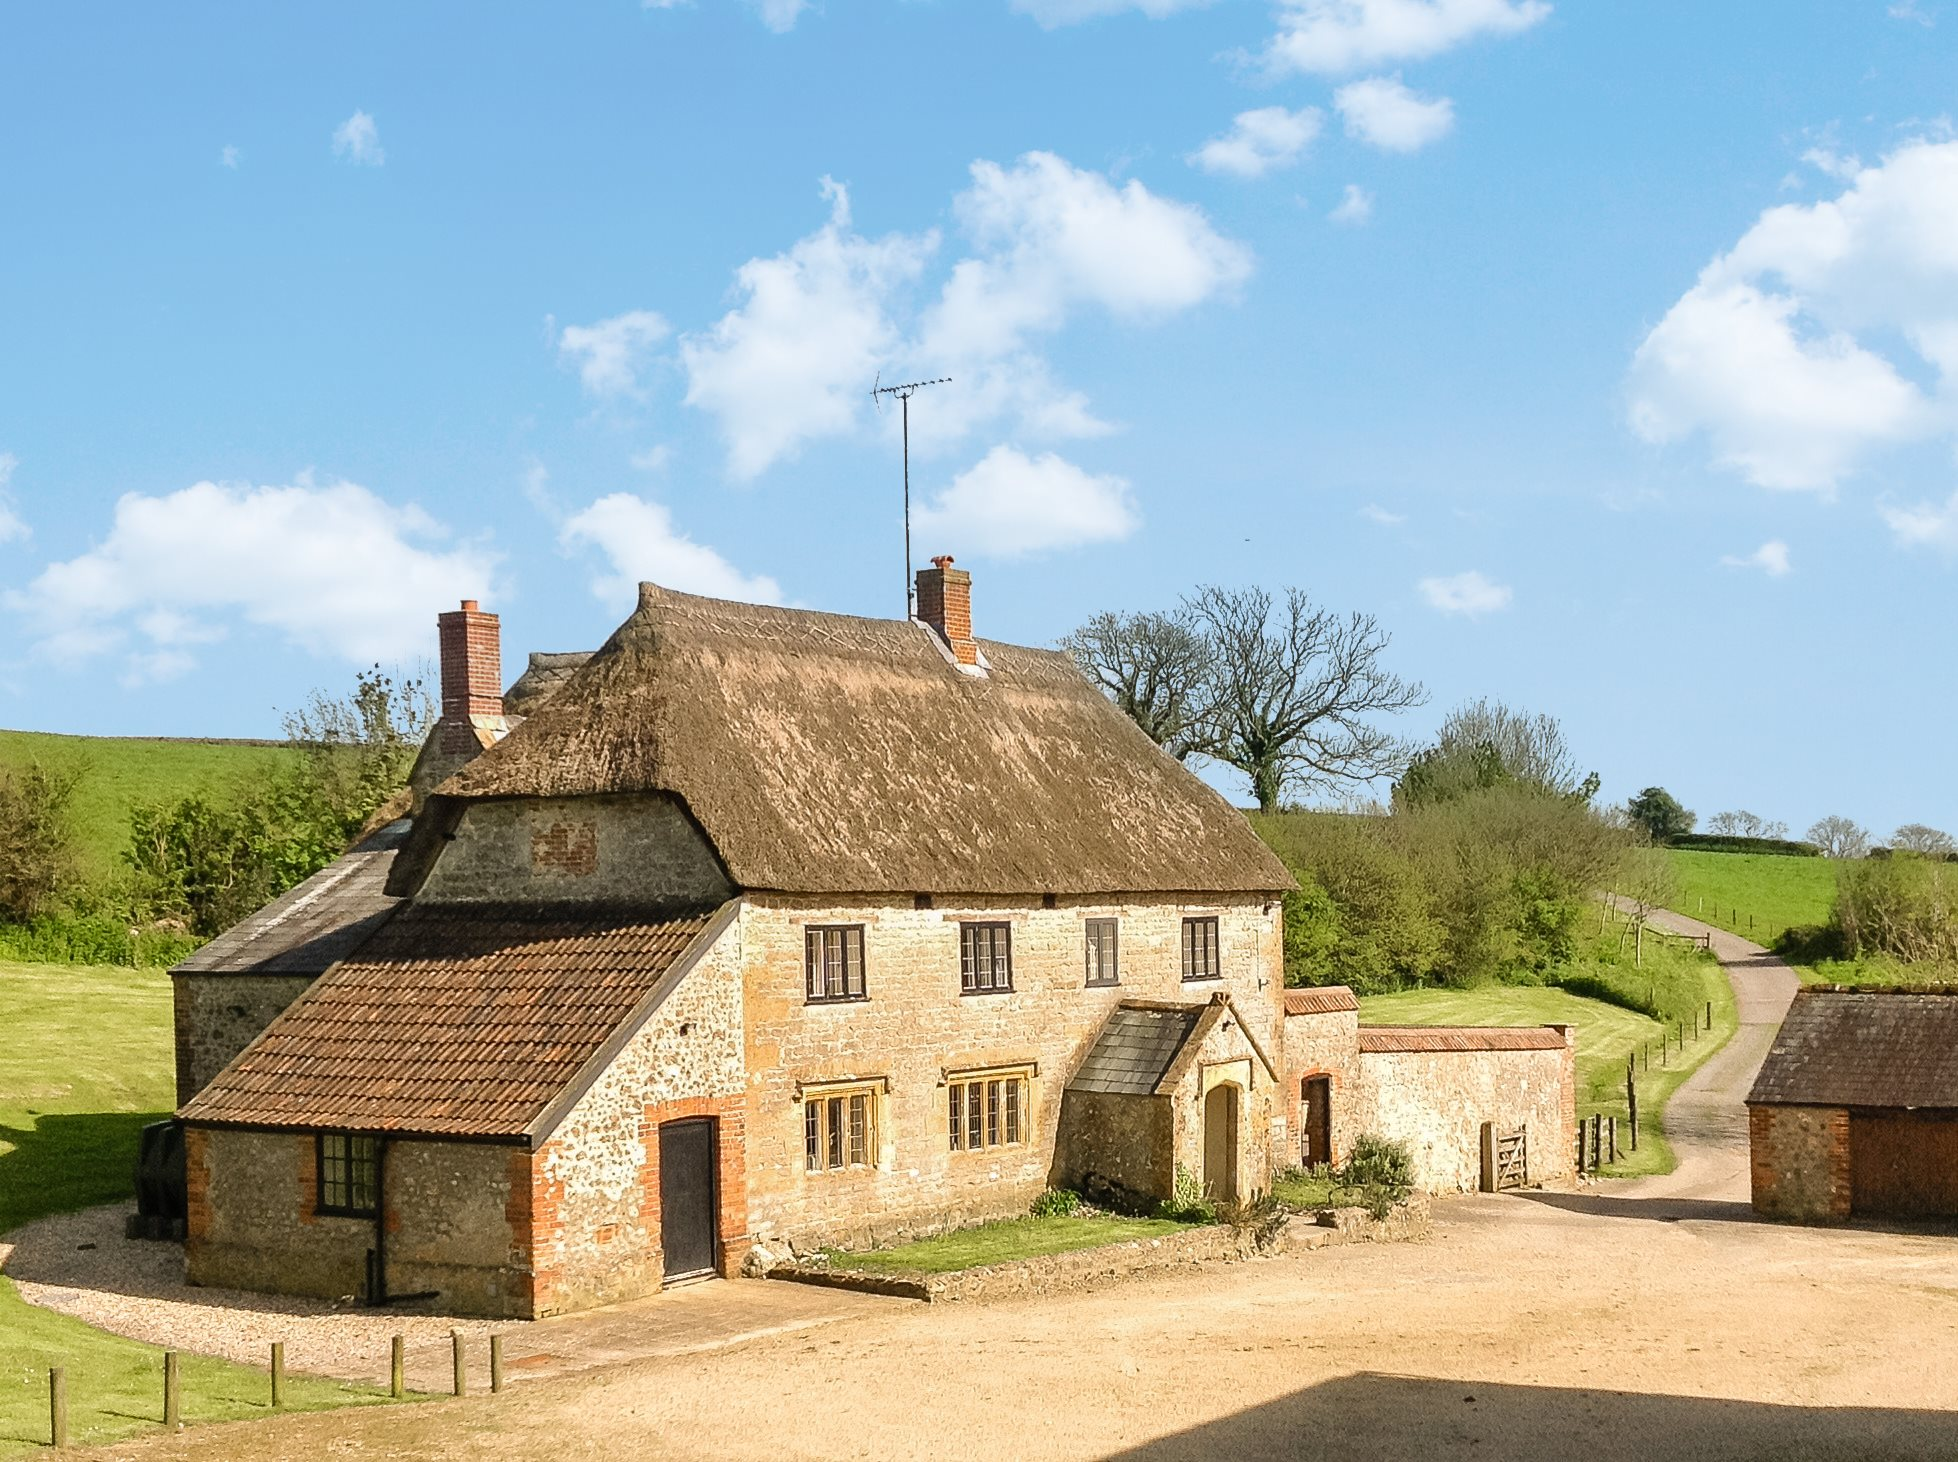 Farmhouse For Sale Dorset Dorset Echo Local Homes And Properties For Sale Around